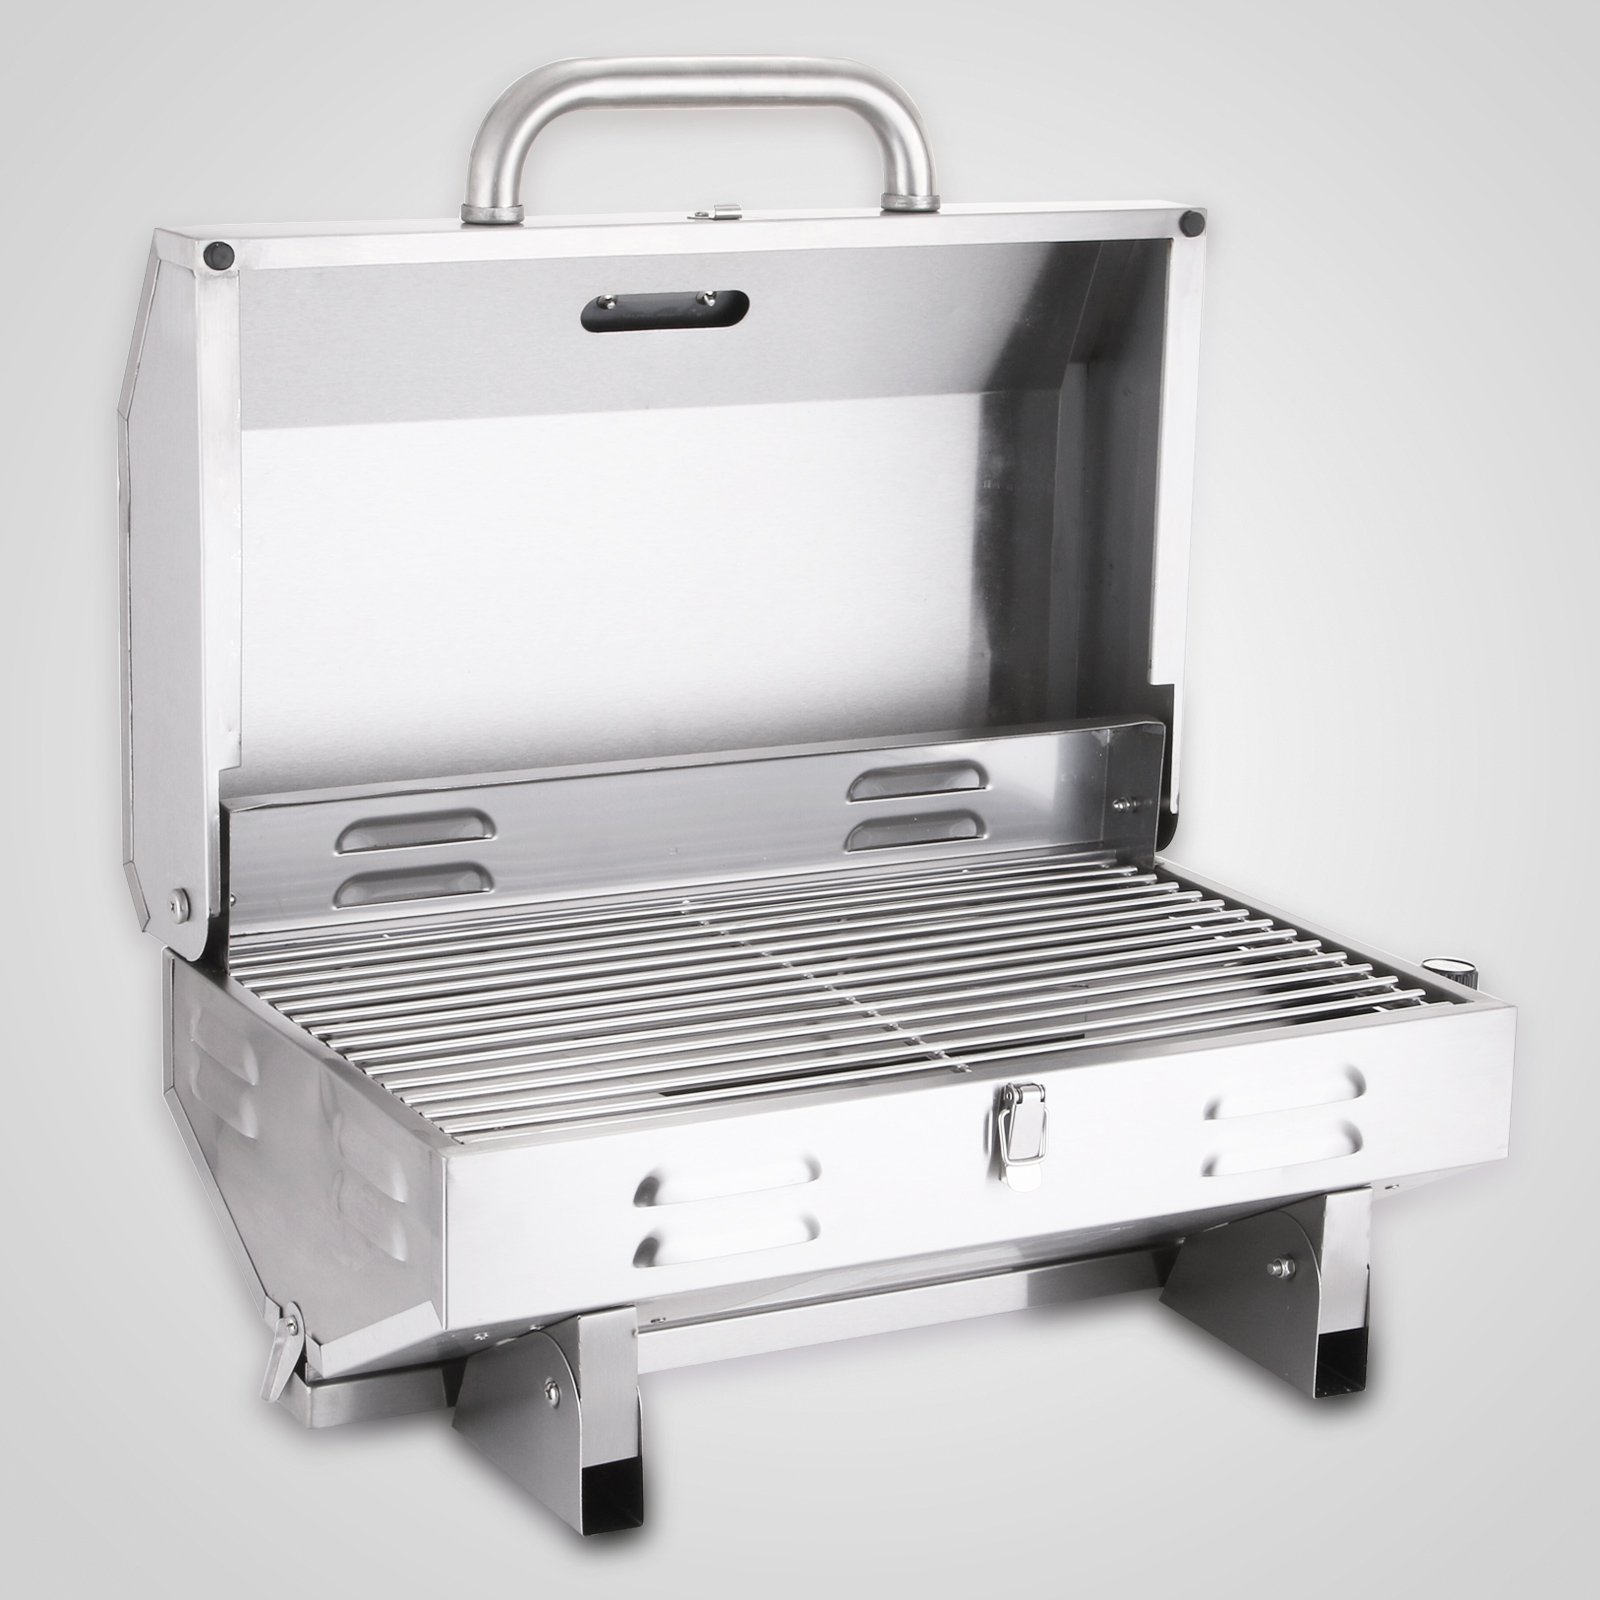 portable bbq gas stainless steel grill marine boat grade barbecue oven 220v 9315280429917 ebay. Black Bedroom Furniture Sets. Home Design Ideas